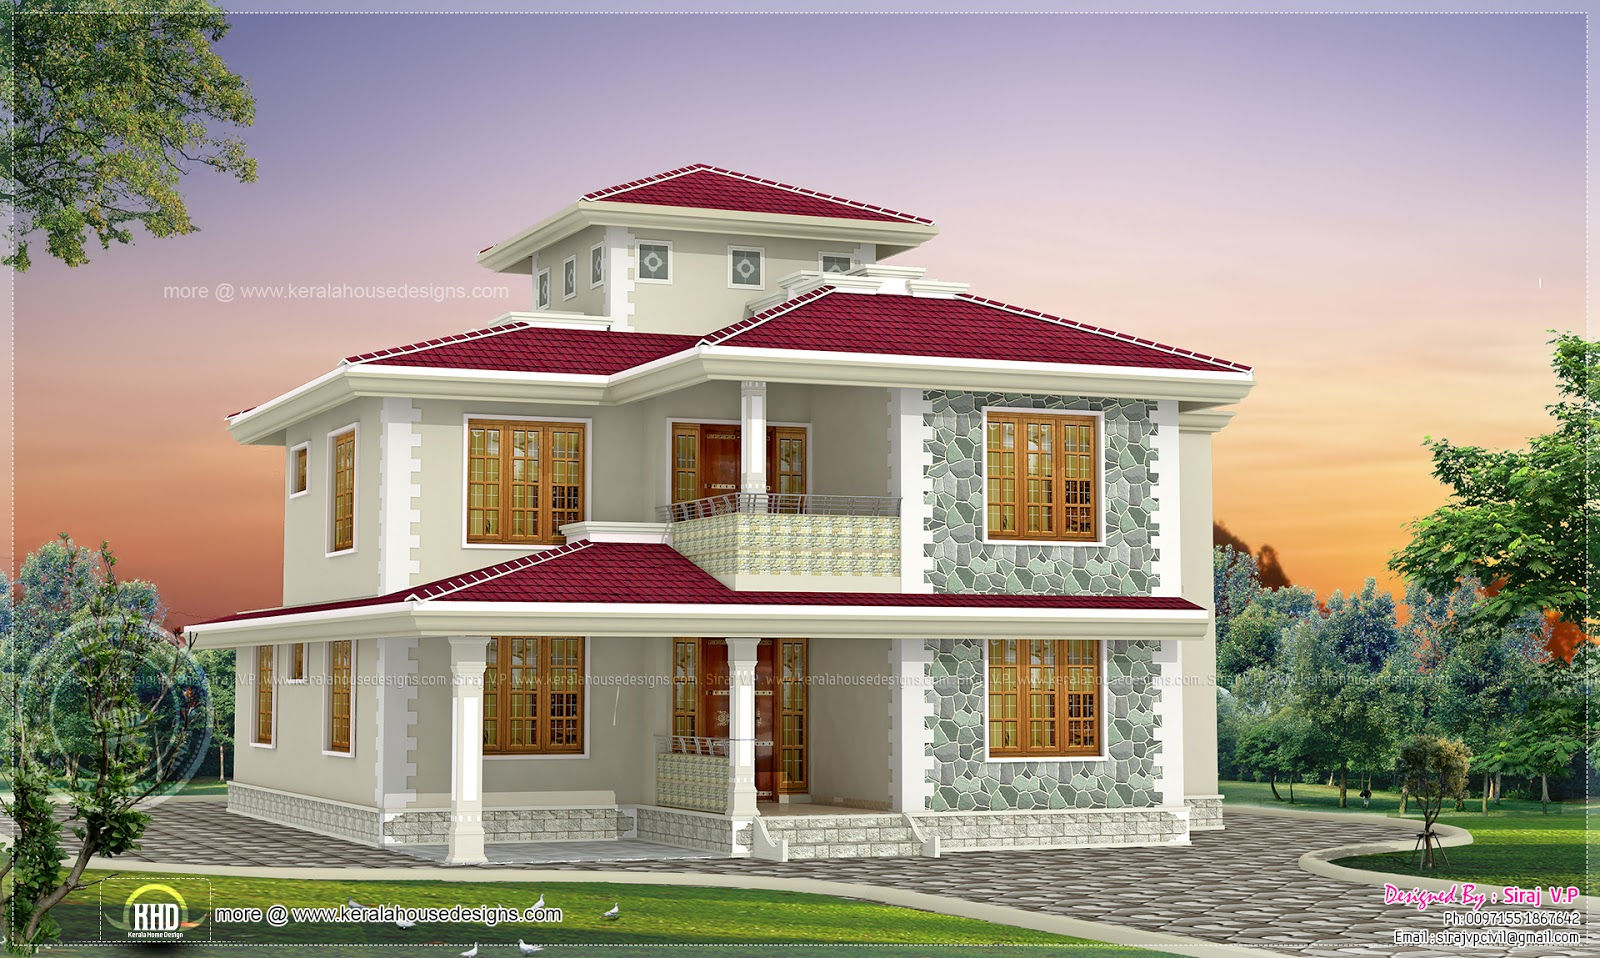 4 bhk kerala style home design indian house plans South indian style house plans with photos